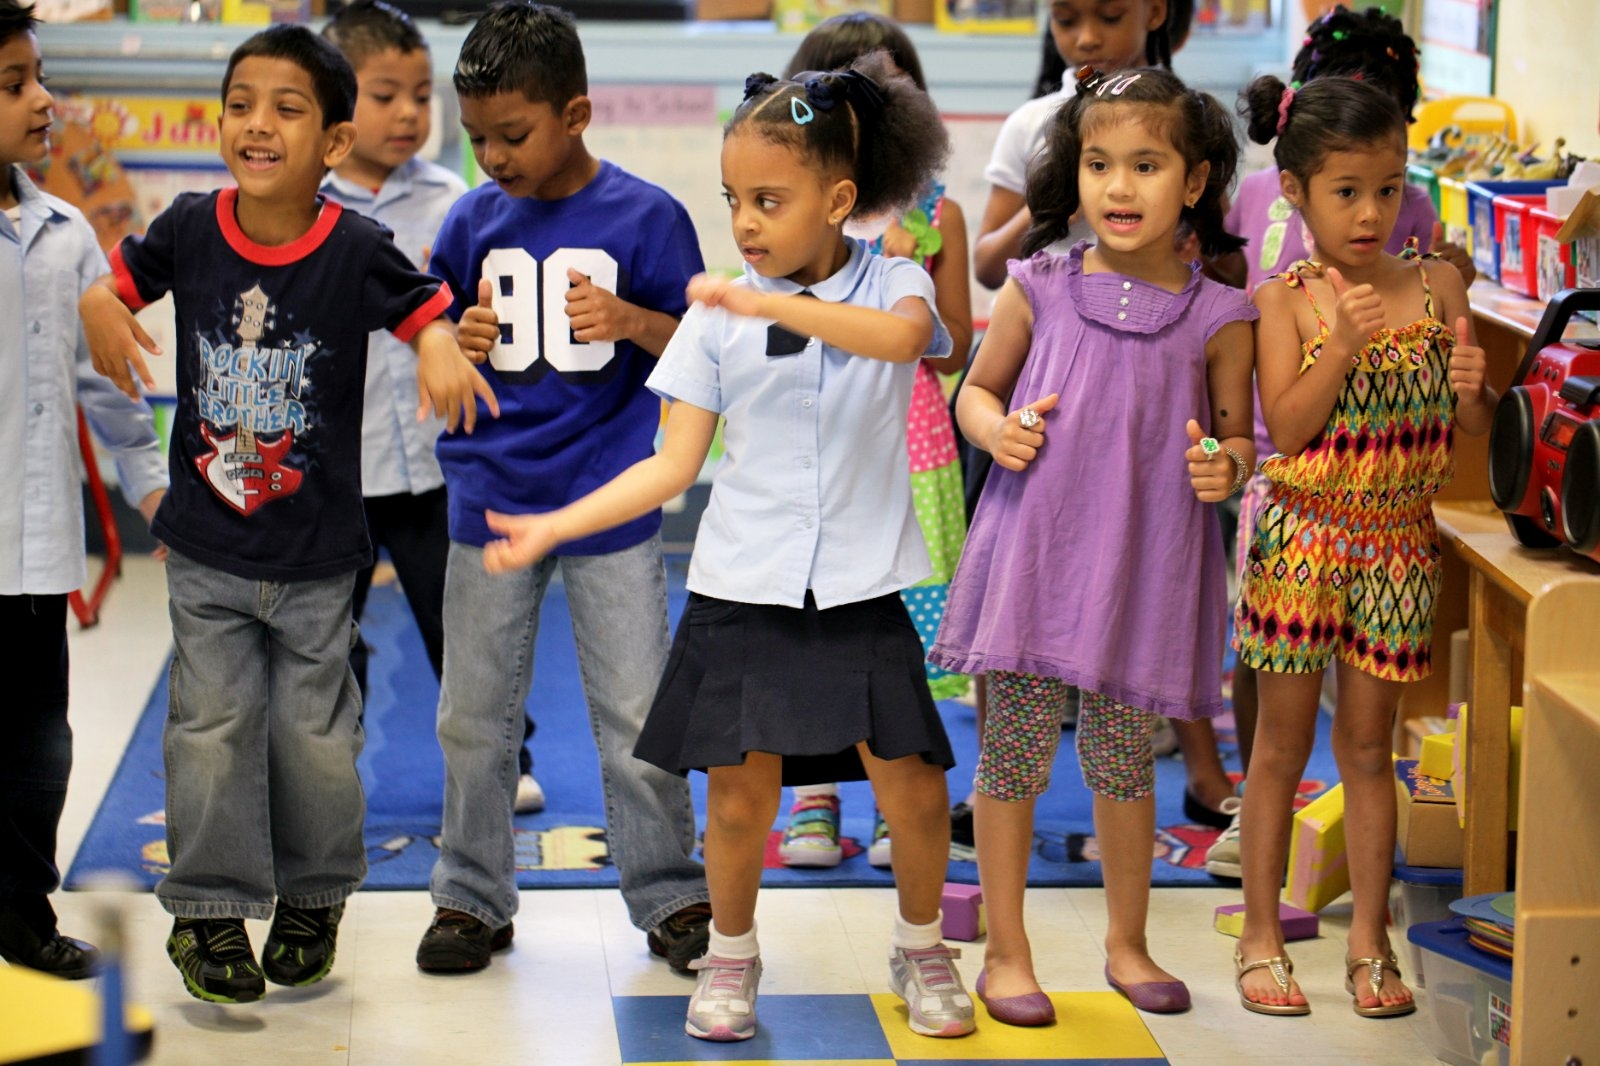 Children dance to a song during school.